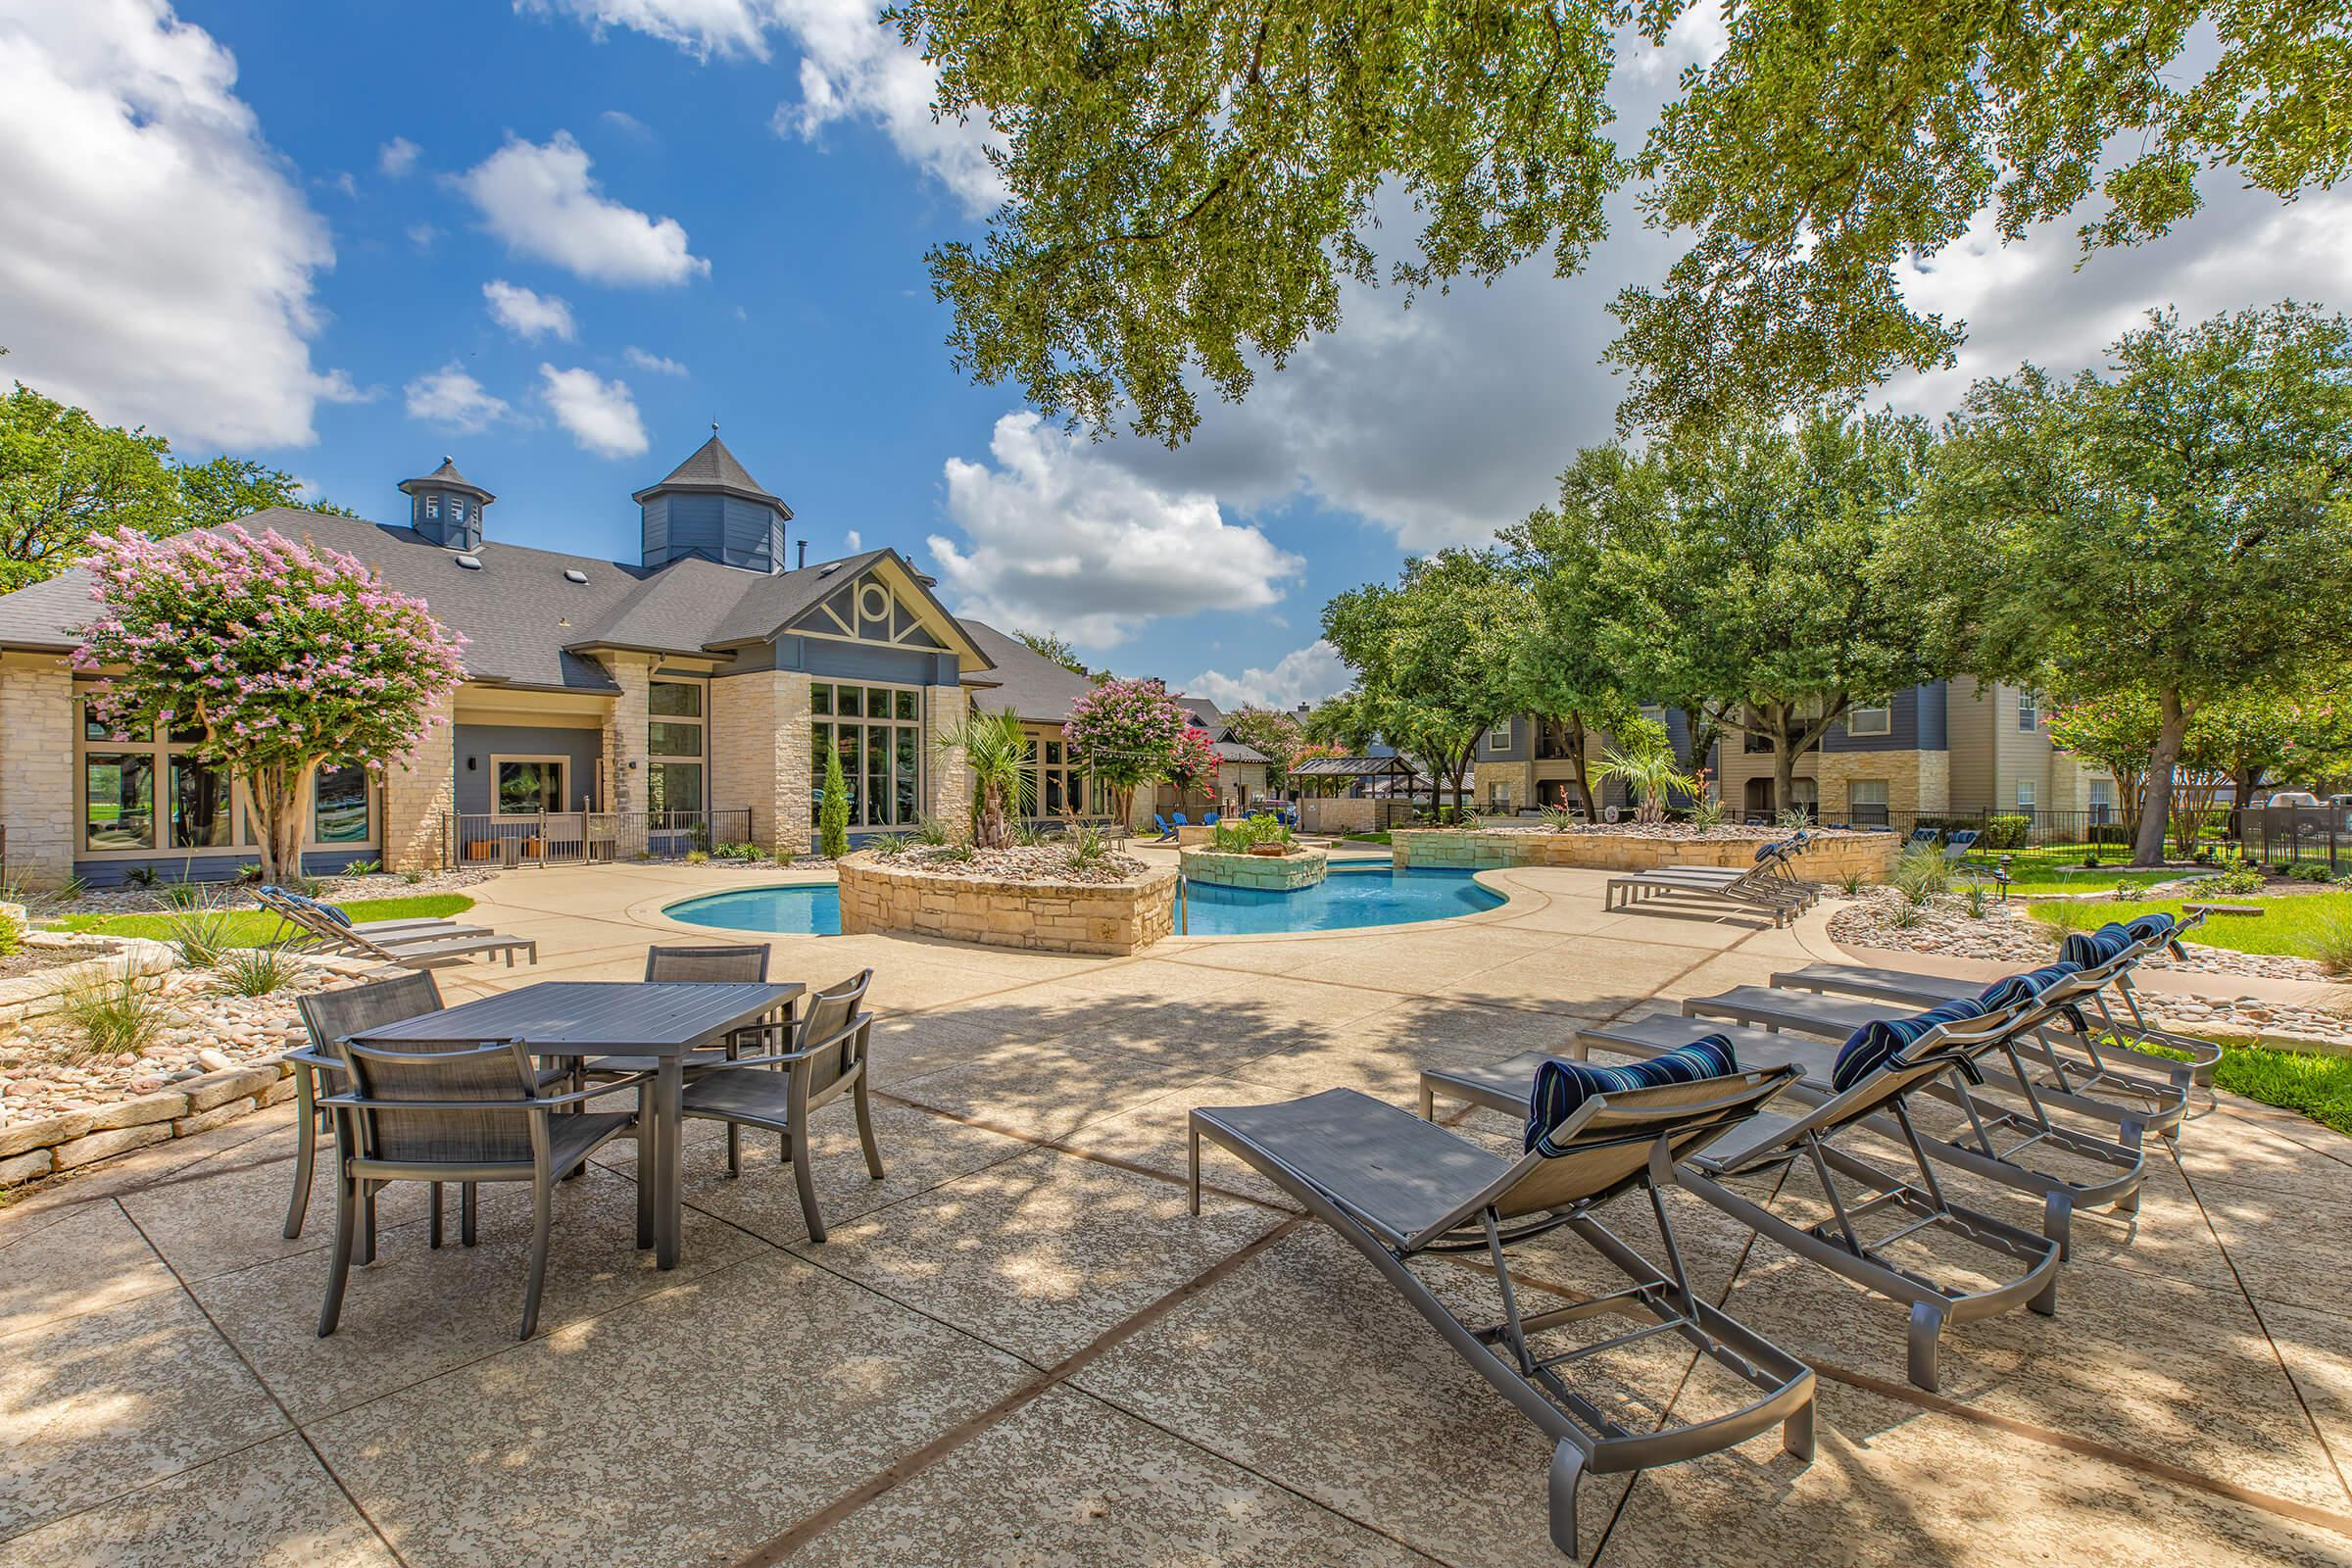 CATCH THE DAYTIME RAYS IN ROUND ROCK, TEXAS